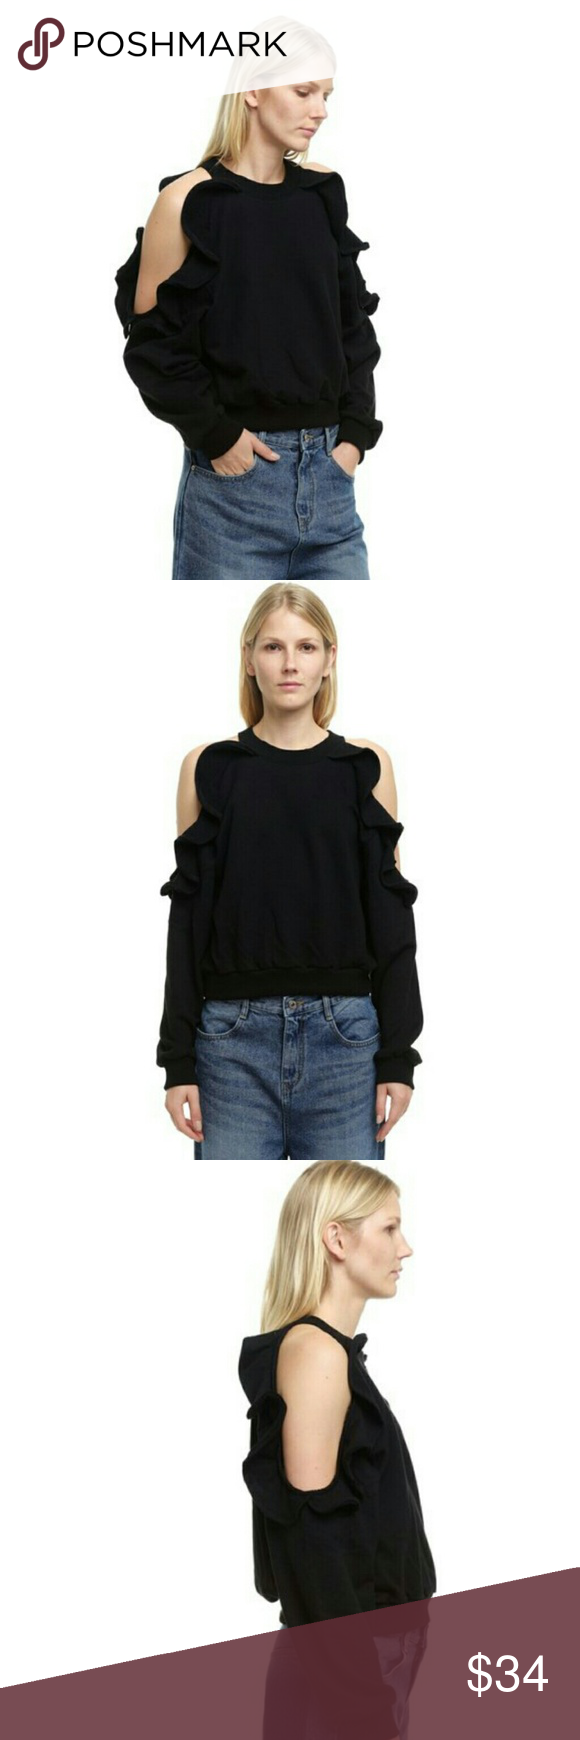 """Style Mafia Aris Frill Top - Black Style Mafia Aris Frill Top  *Size Small - Underarm to underarm : 19.5"""" flat / Shoulder to hem : 21"""" *Black Color  *Cold shoulder / Open shoulder with ruffle details around opening *100% Cotton - Machine Wash  *In great pre-loved condition with light signs of normal wear. No major flaws. *No trade Style Mafia Tops Sweatshirts & Hoodies"""